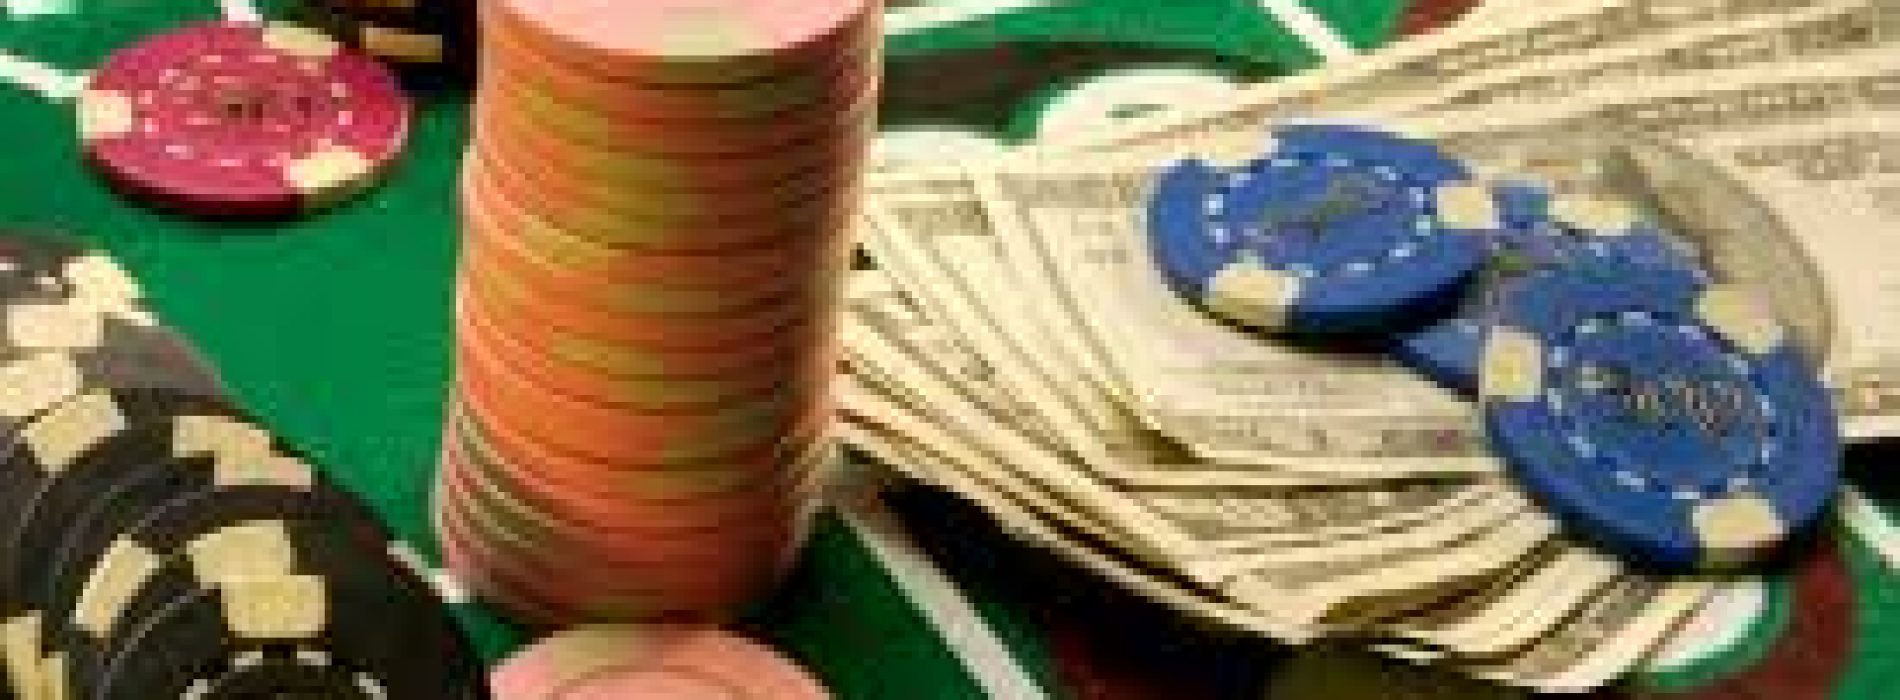 Online betting sites- A better option for sports betting then sportsbooks